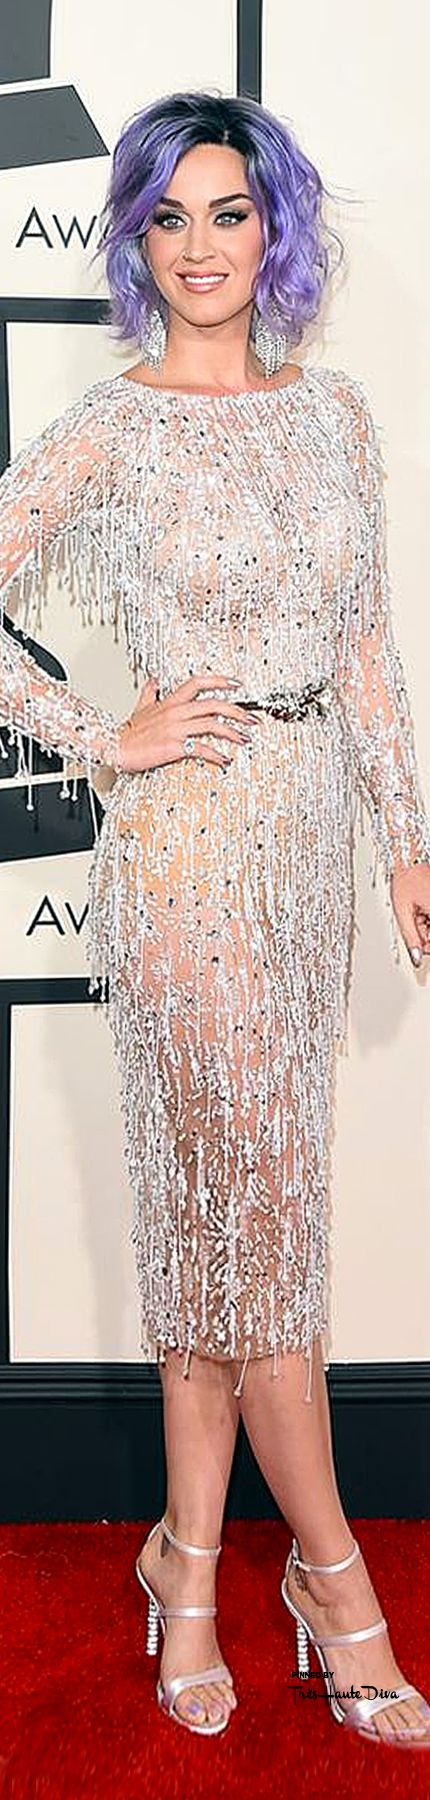 #Katy #Perry in Zuhair Murad Haute Couture at the 57th Annual #Grammy Awards 2015 ♔THD♔